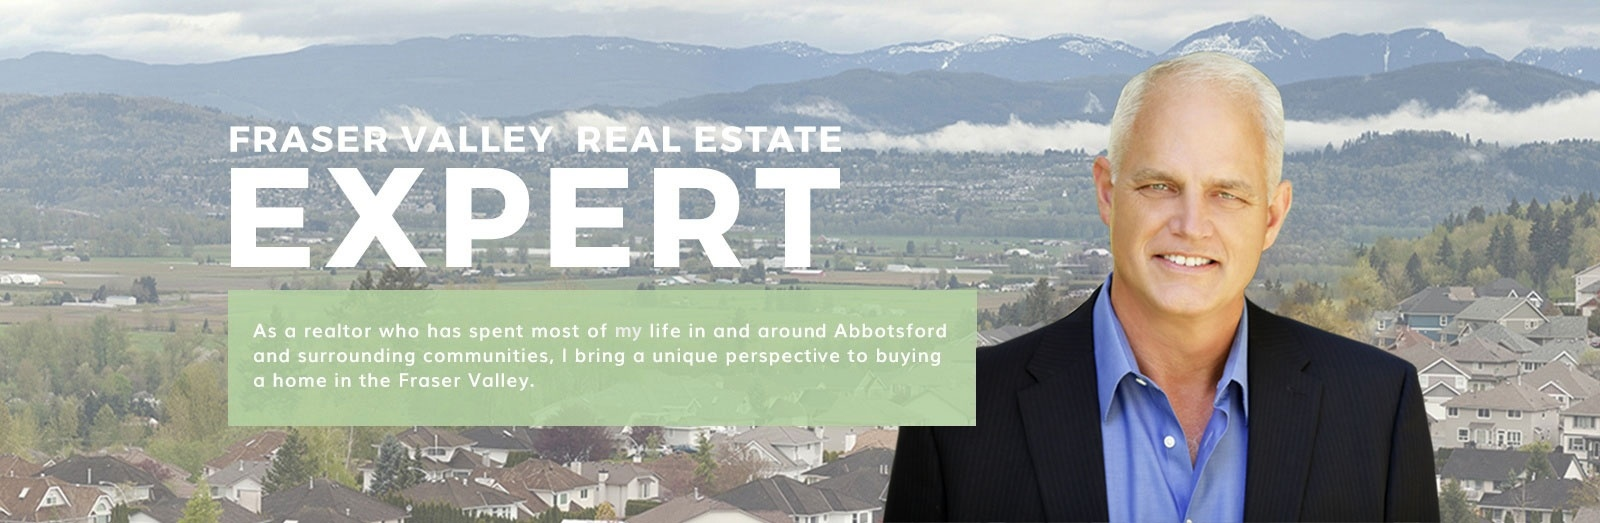 Abbotsford real estate listings